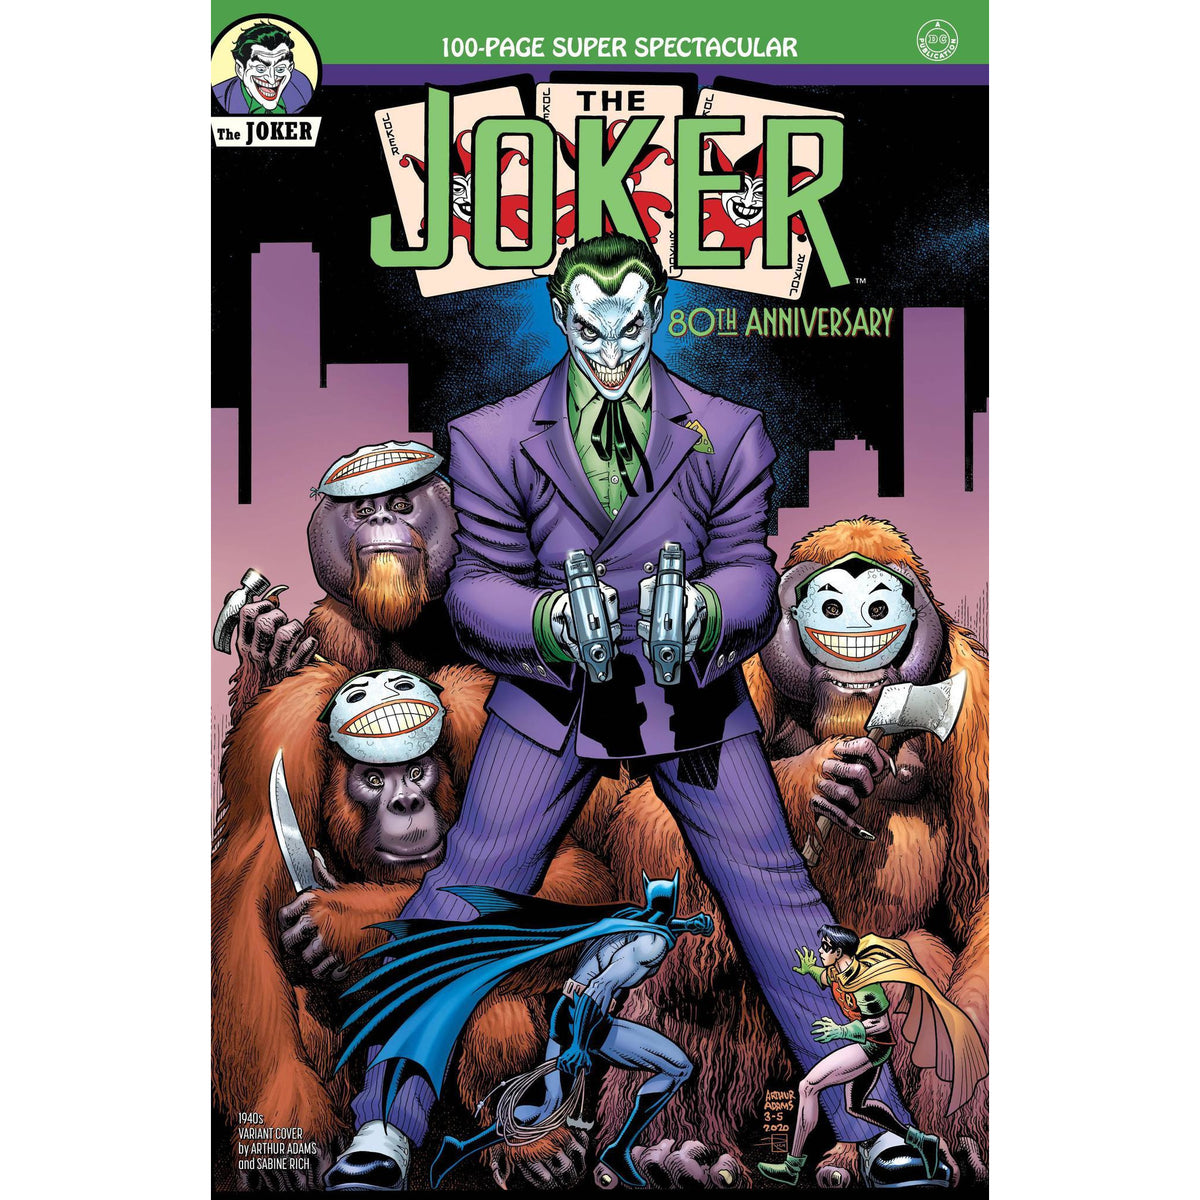 JOKER 80TH ANNIVERSARY 100 PAGE SUPER SPECTACULAR #1 1940s ARTHUR ADAMS VARIANT COVER